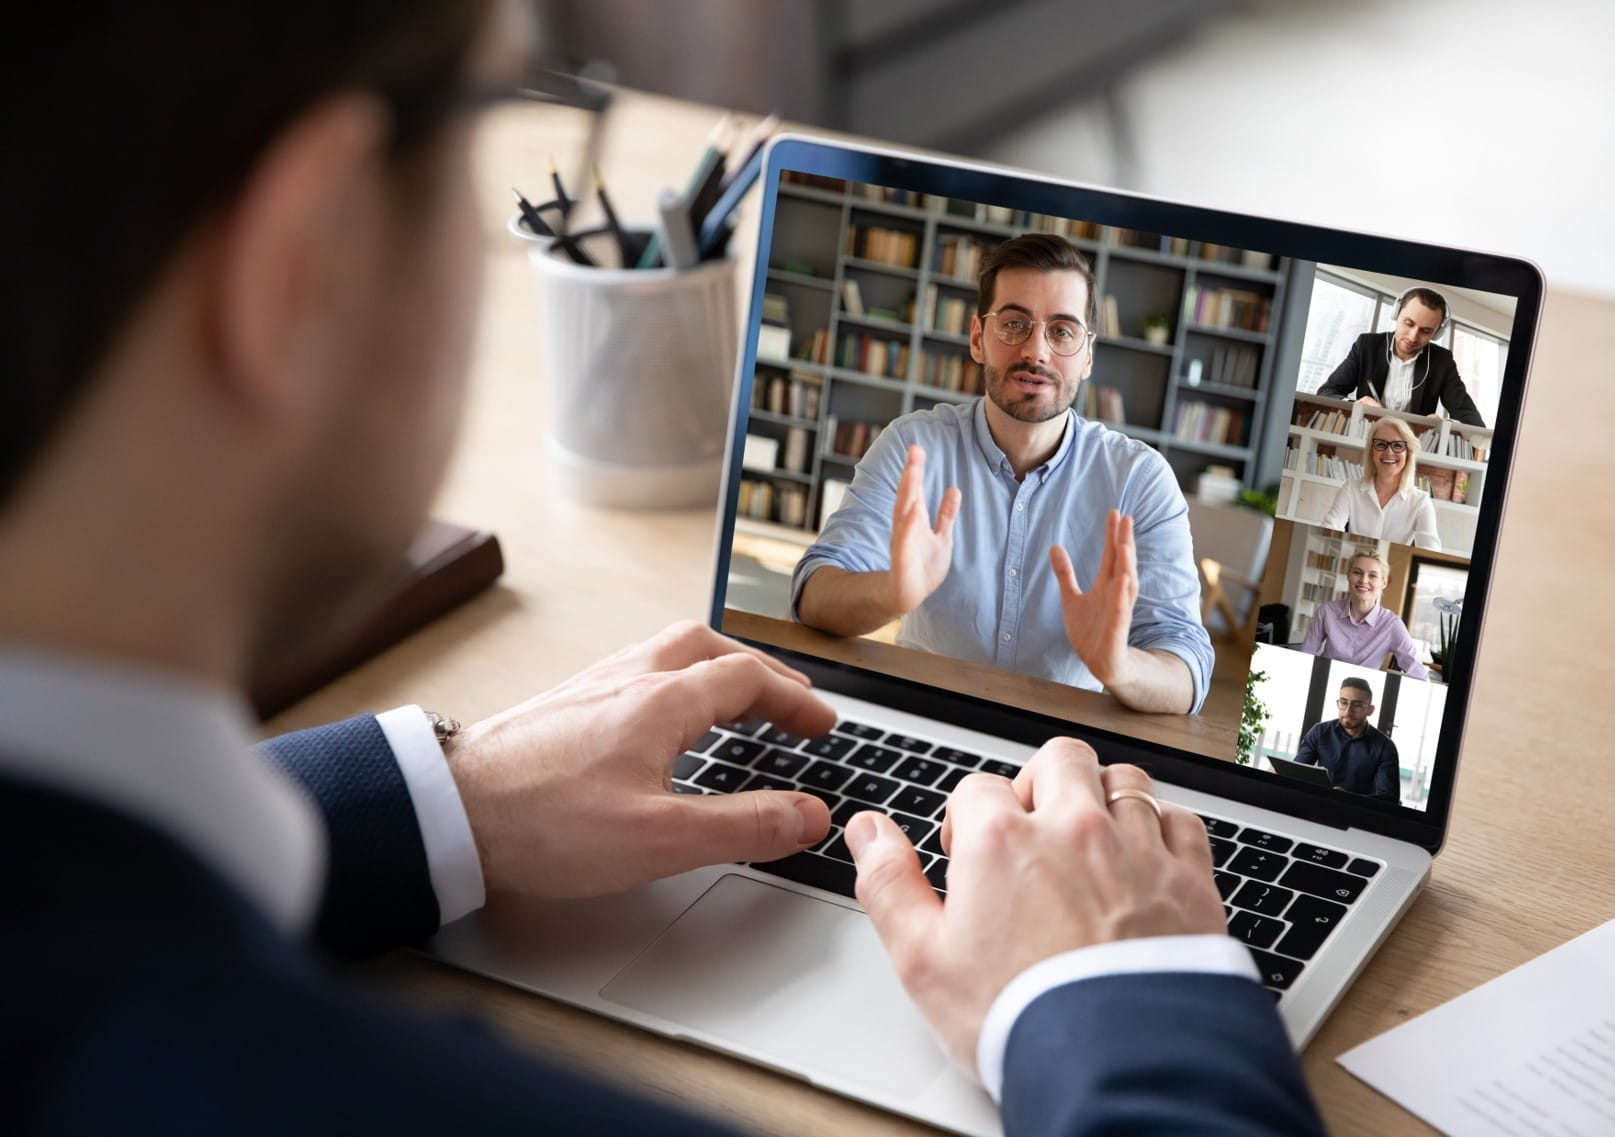 Online training course on video conferencing